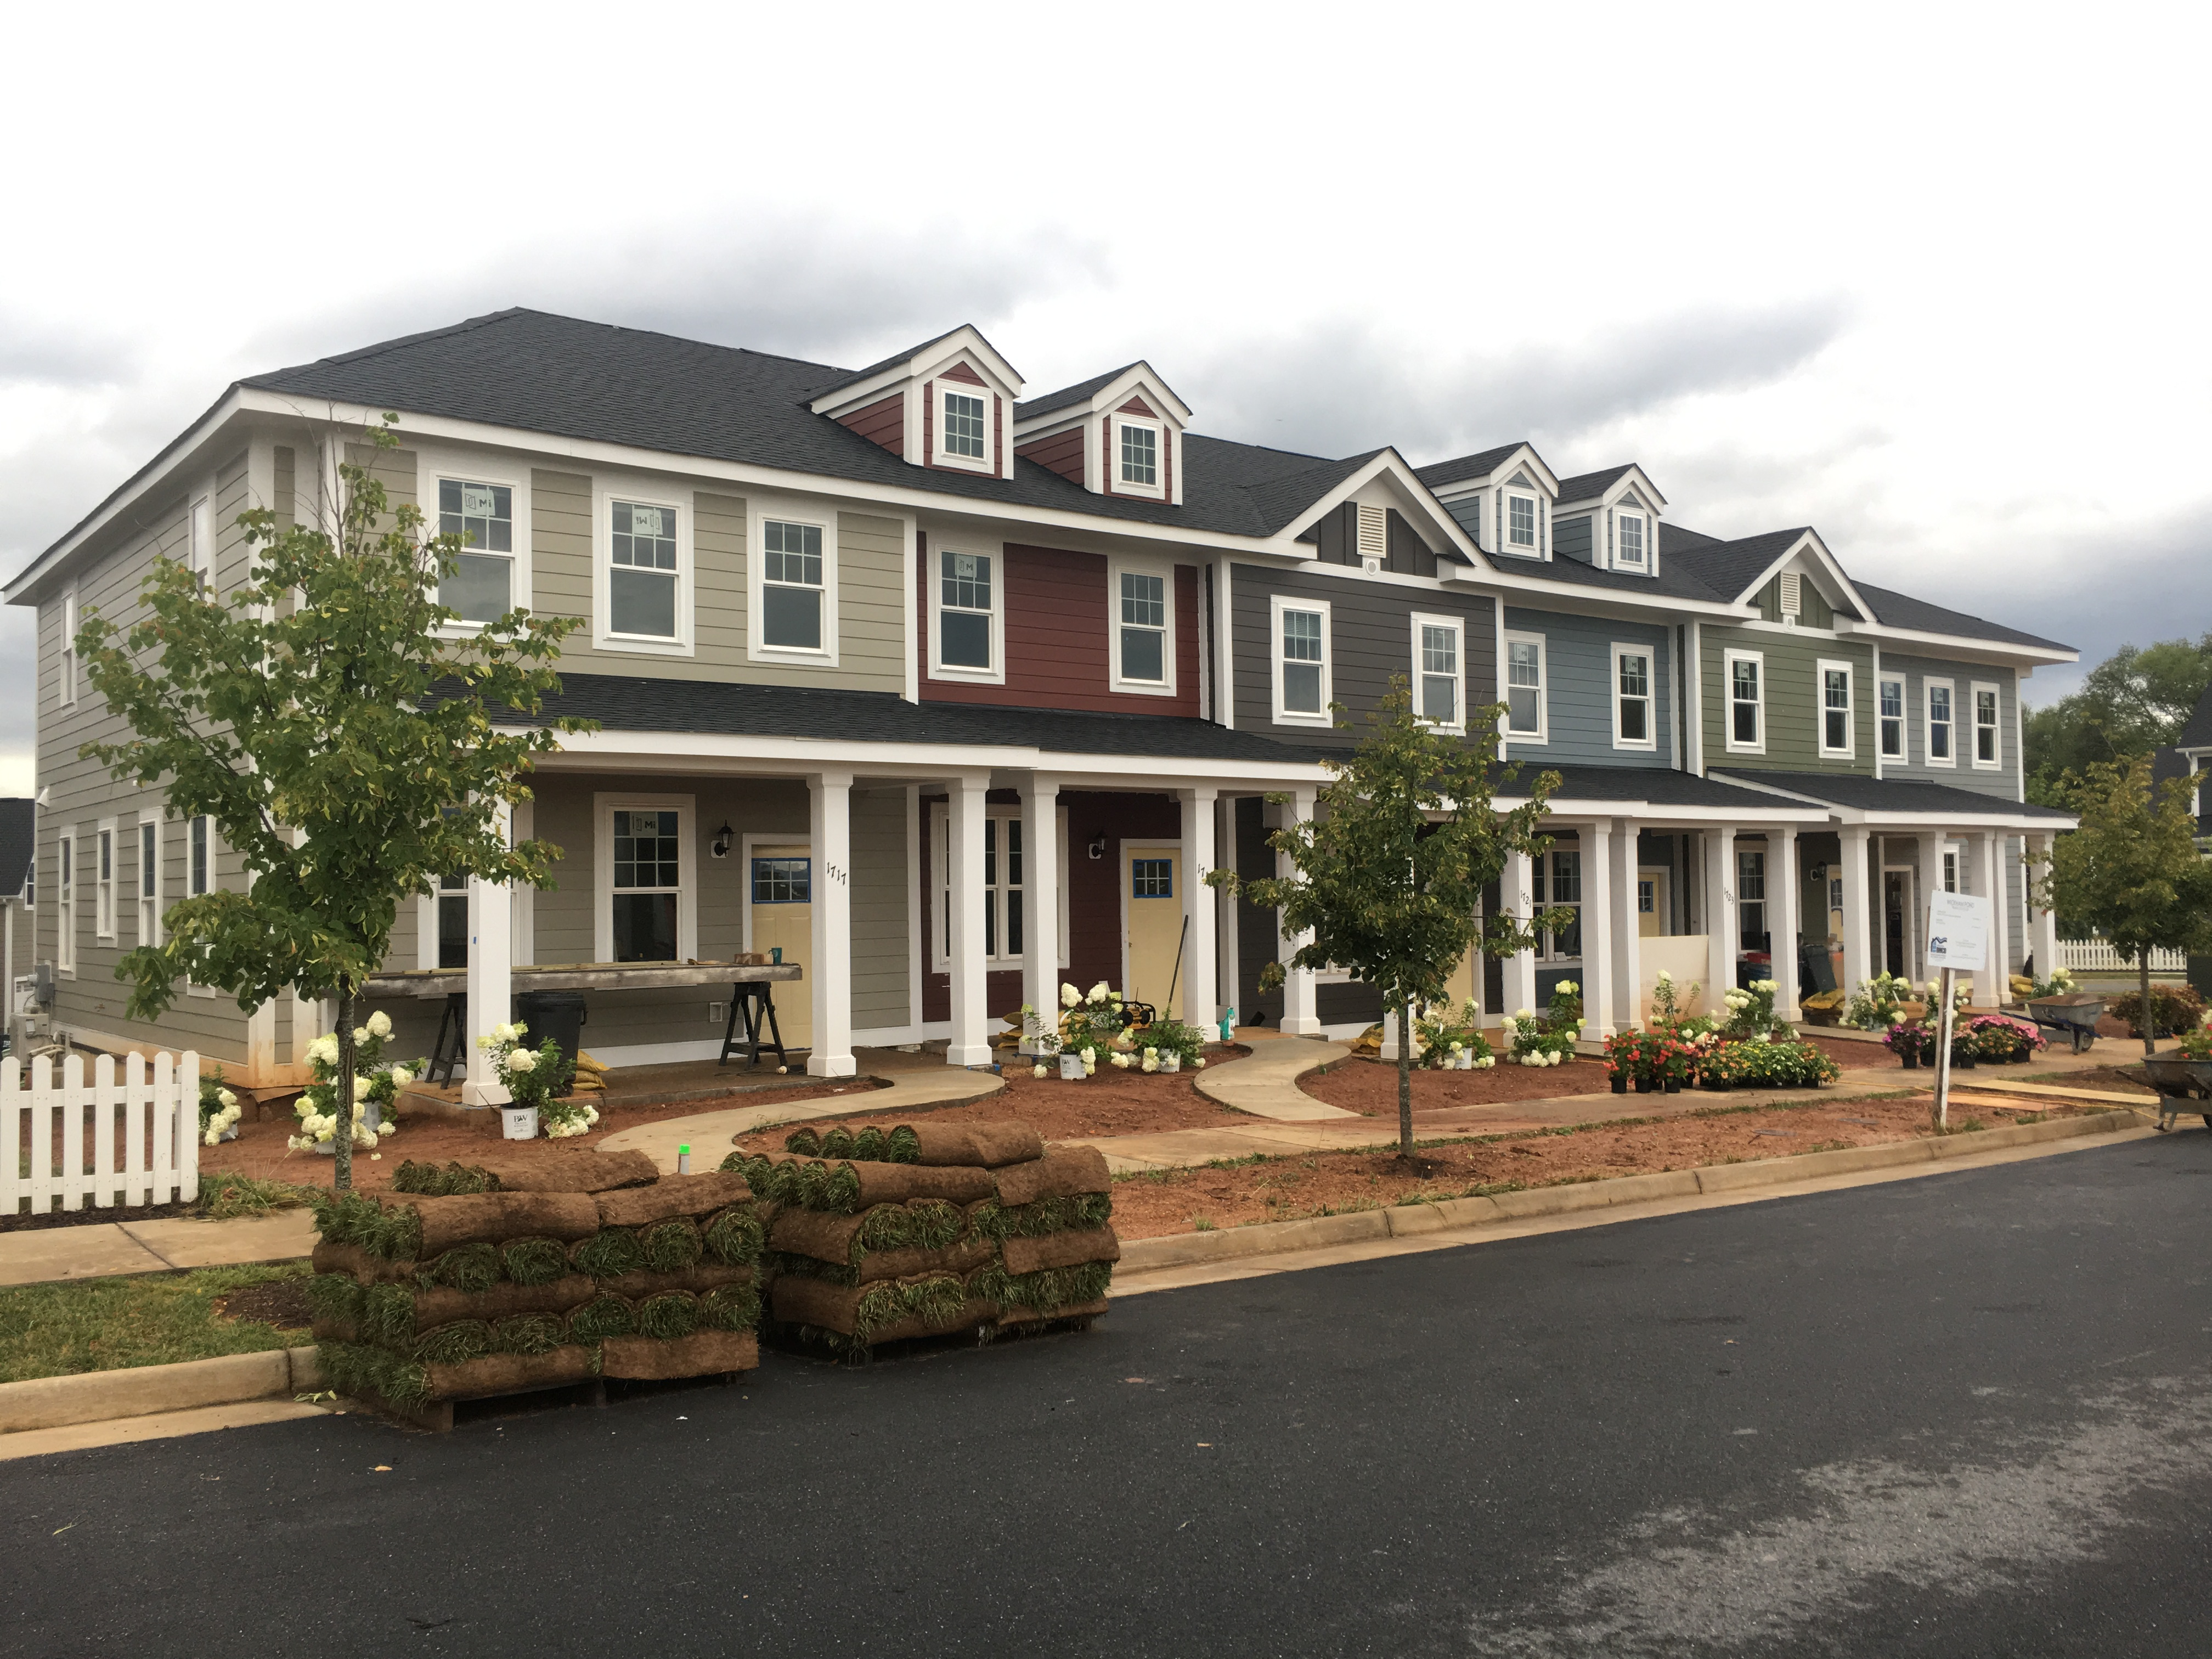 Habitat homes at Wickham Pond in Crozet